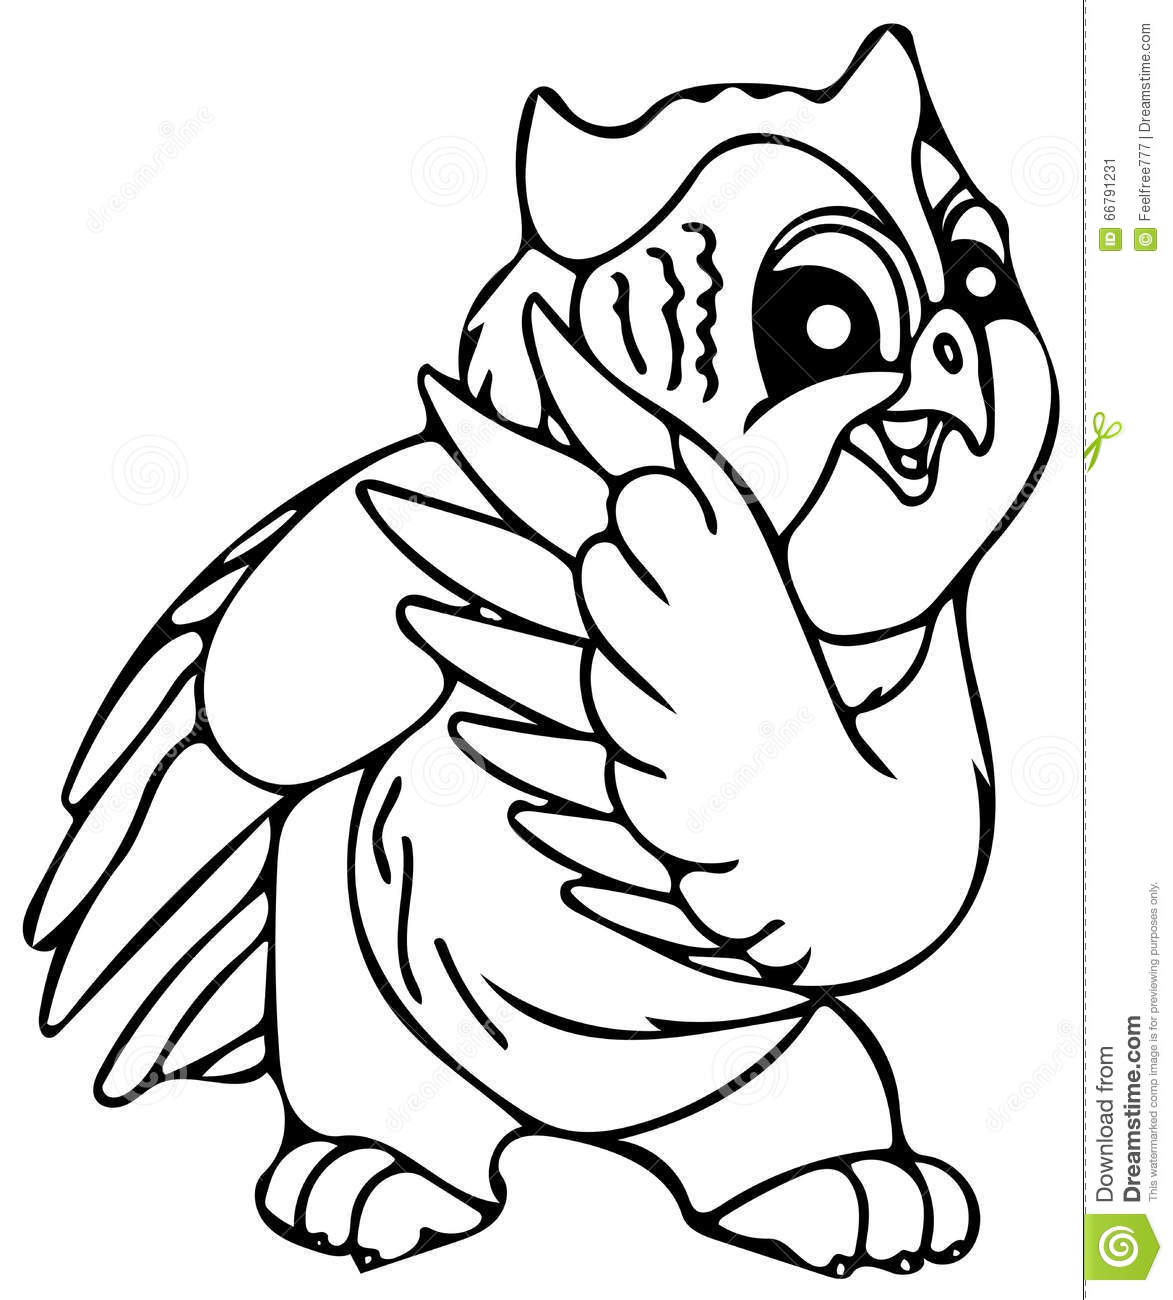 stock image cute owl coloring pages image 66791231